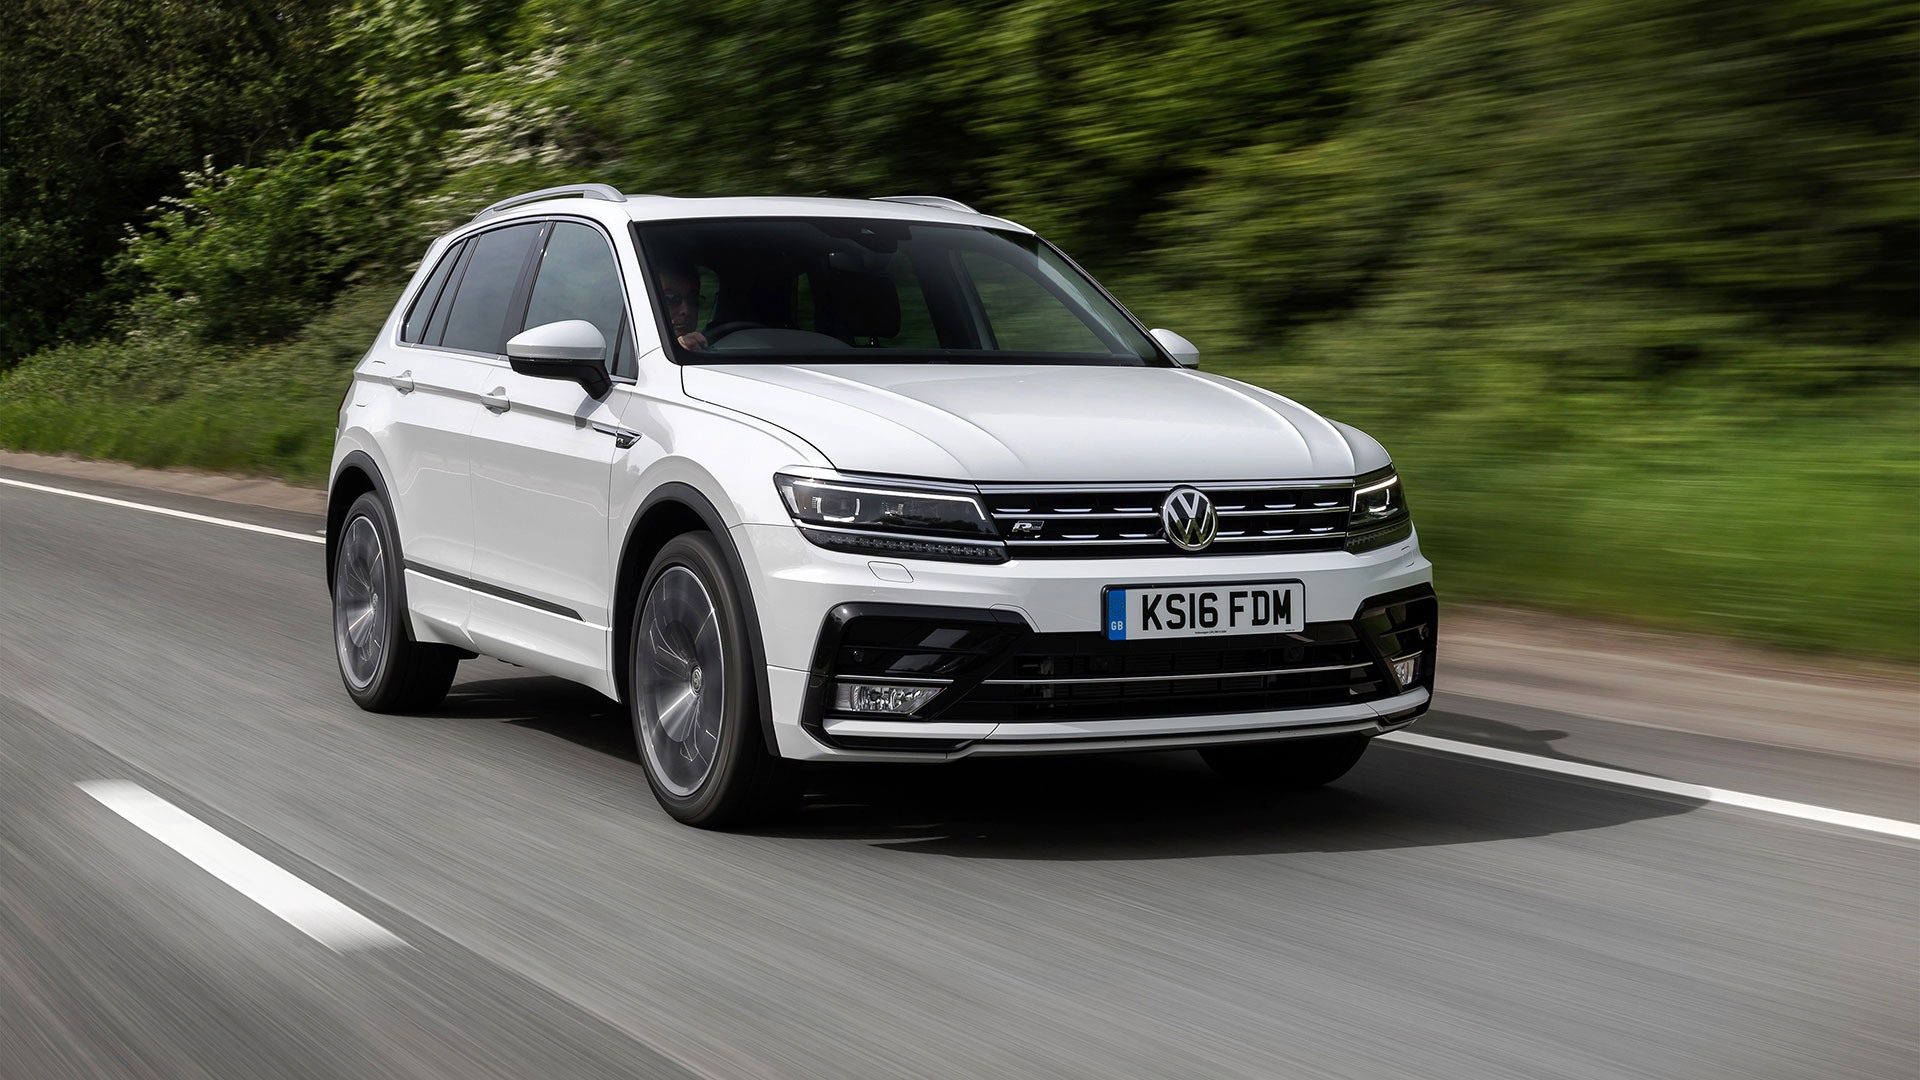 Used Volkswagen Tiguan Suv Cars For Sale On Auto Trader Autos Post